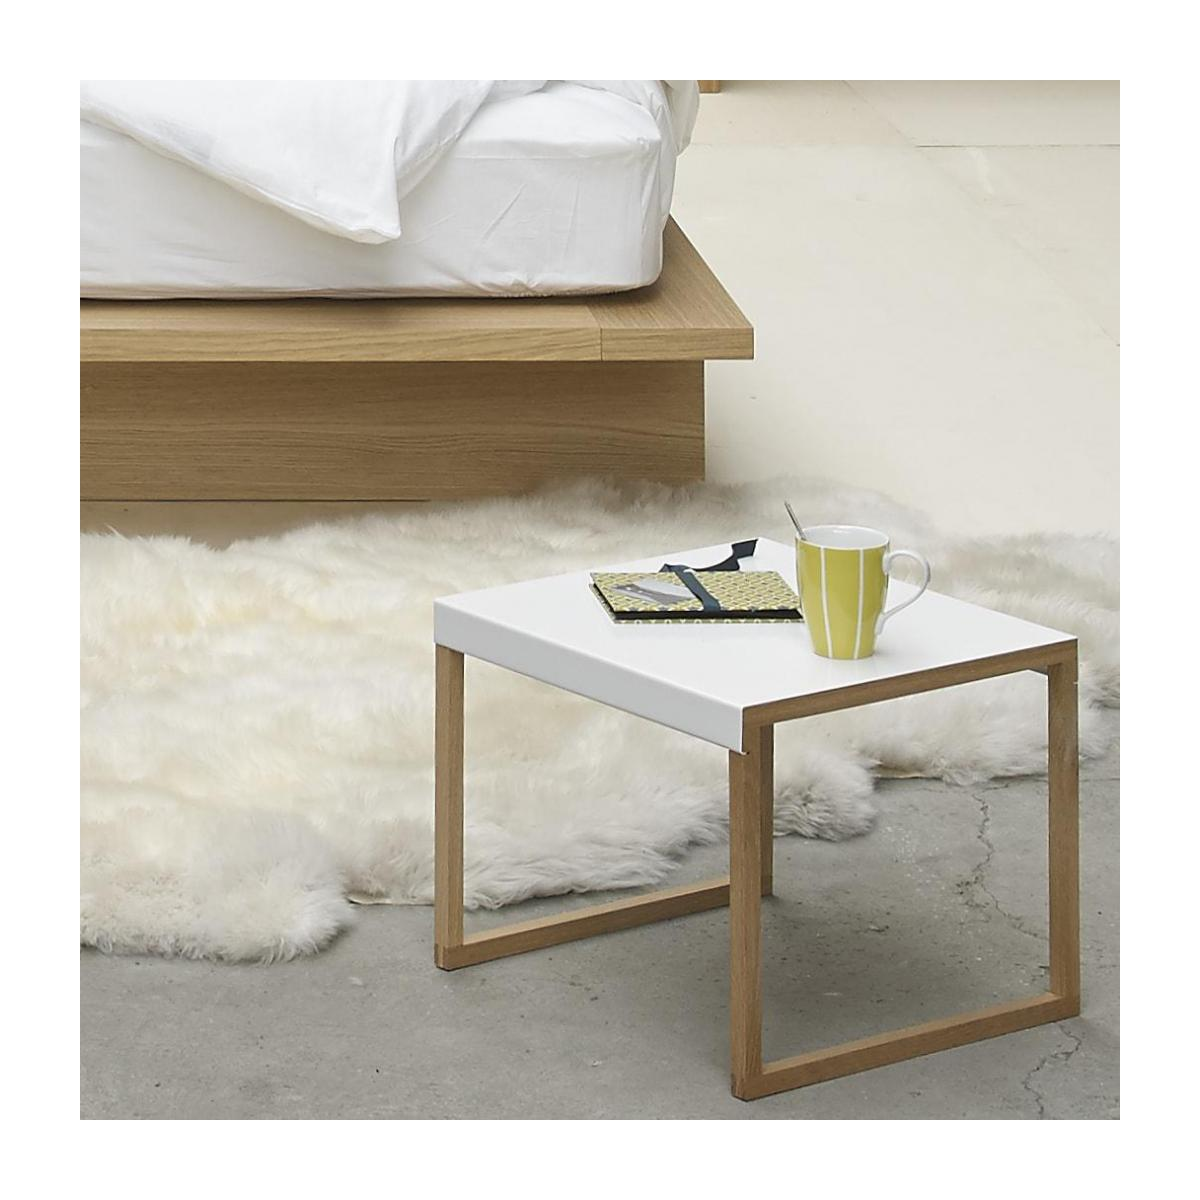 Table d'appoint blanche n°2